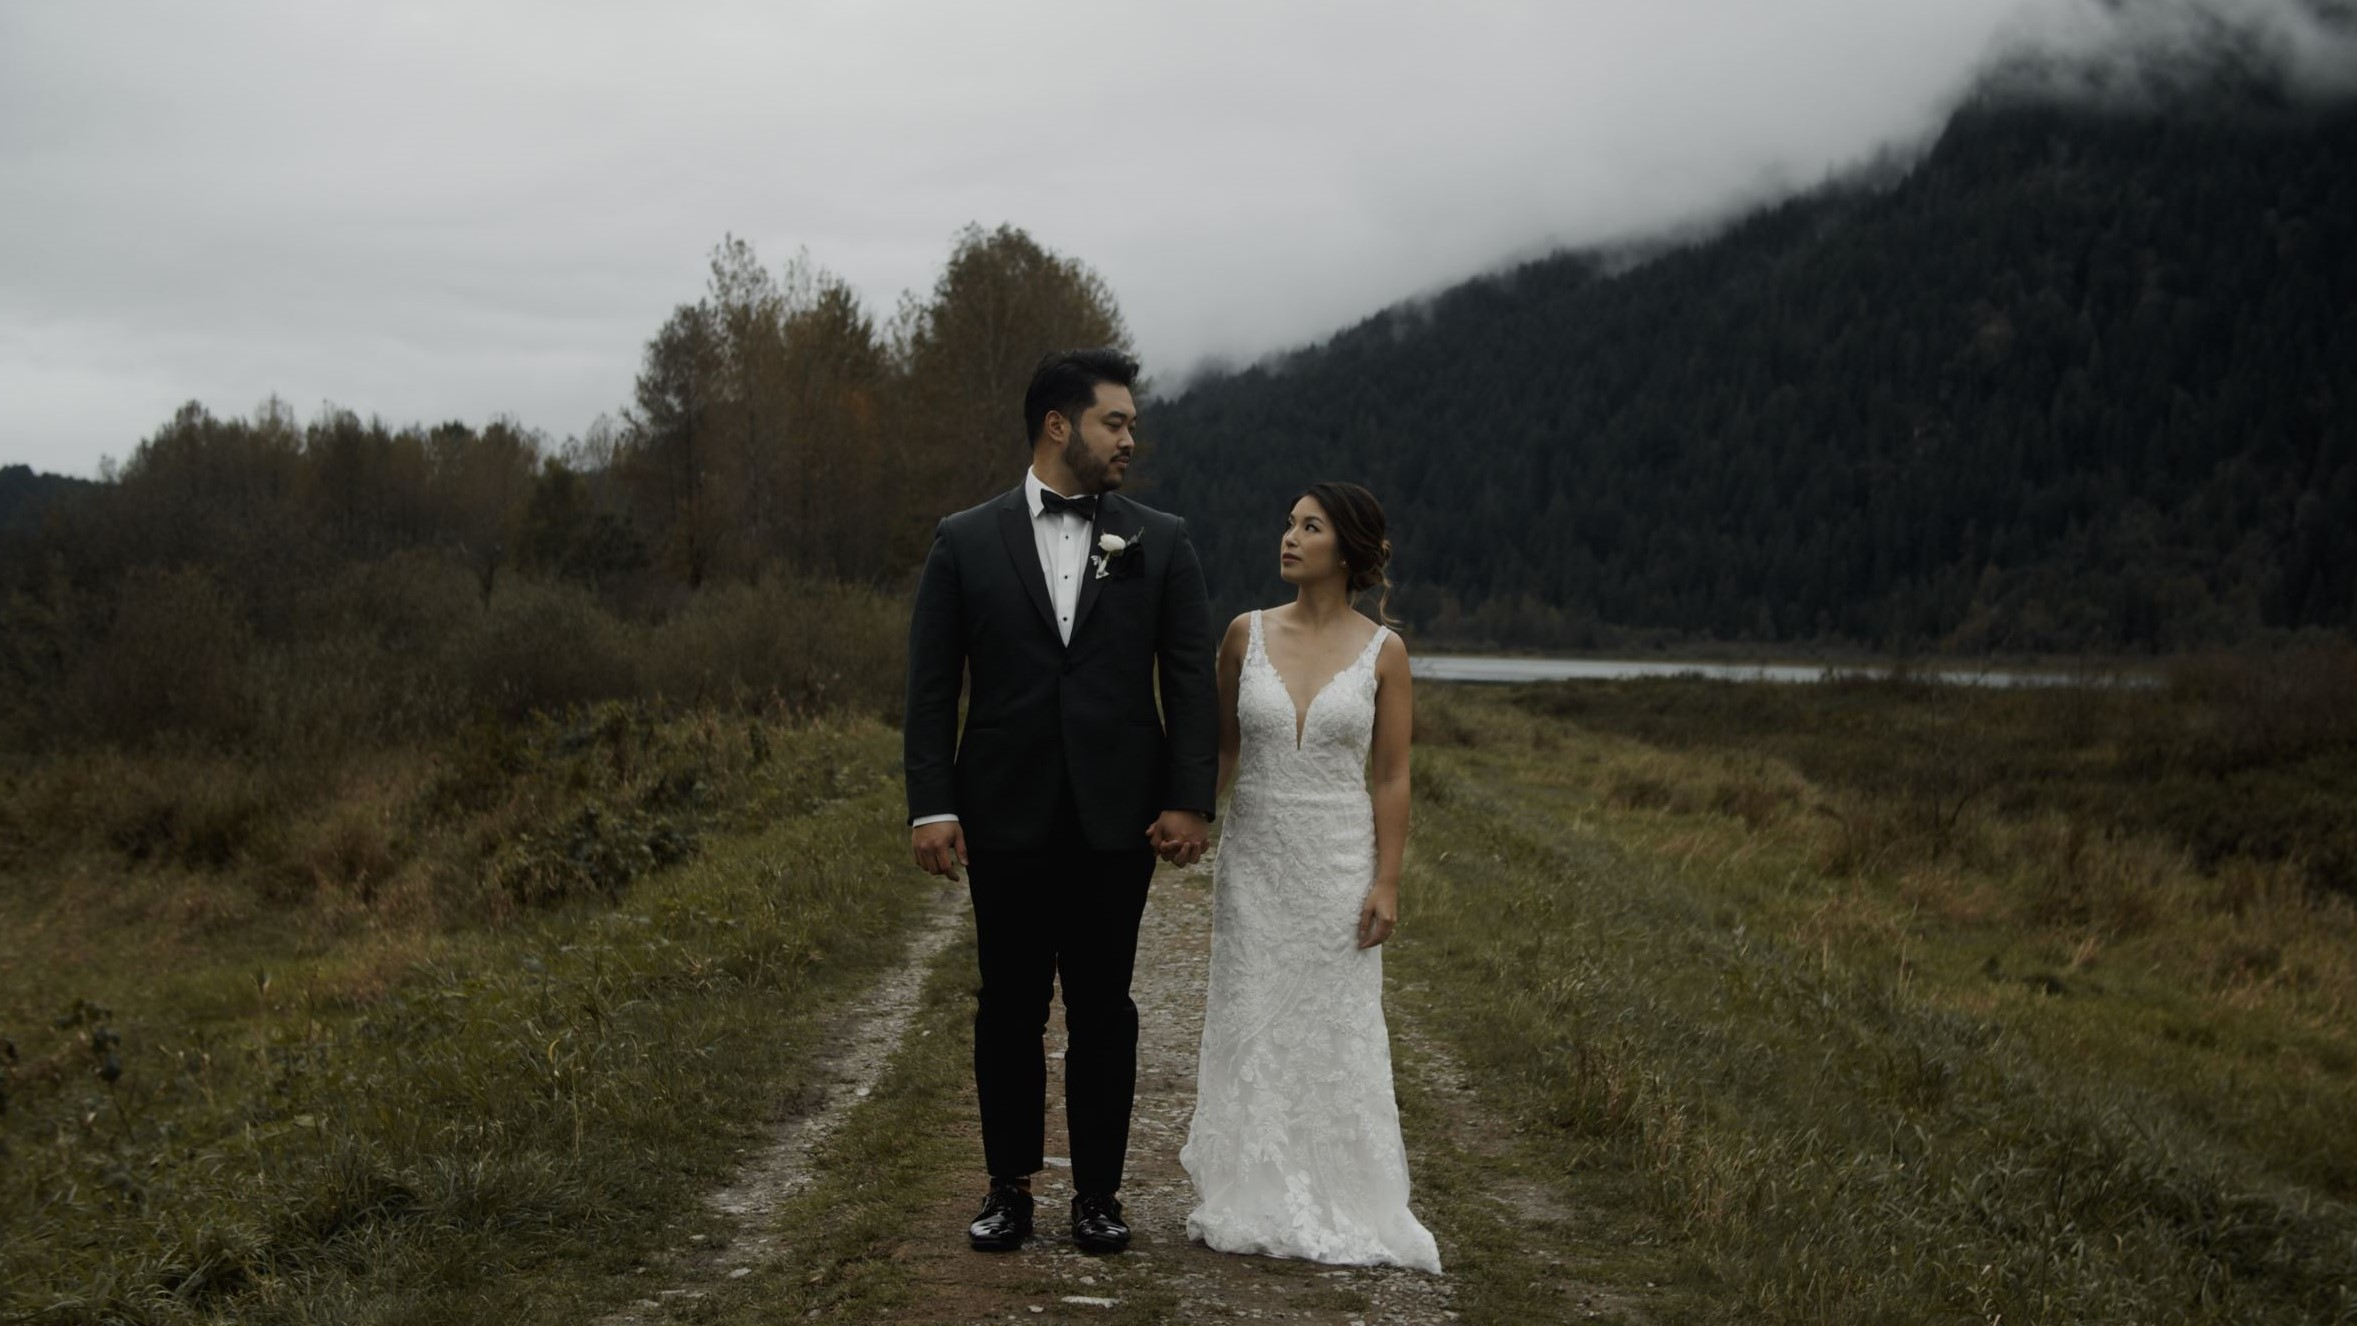 Julie + Brendon | Vancouver, Canada | Swaneset Bay Resort & Country Club